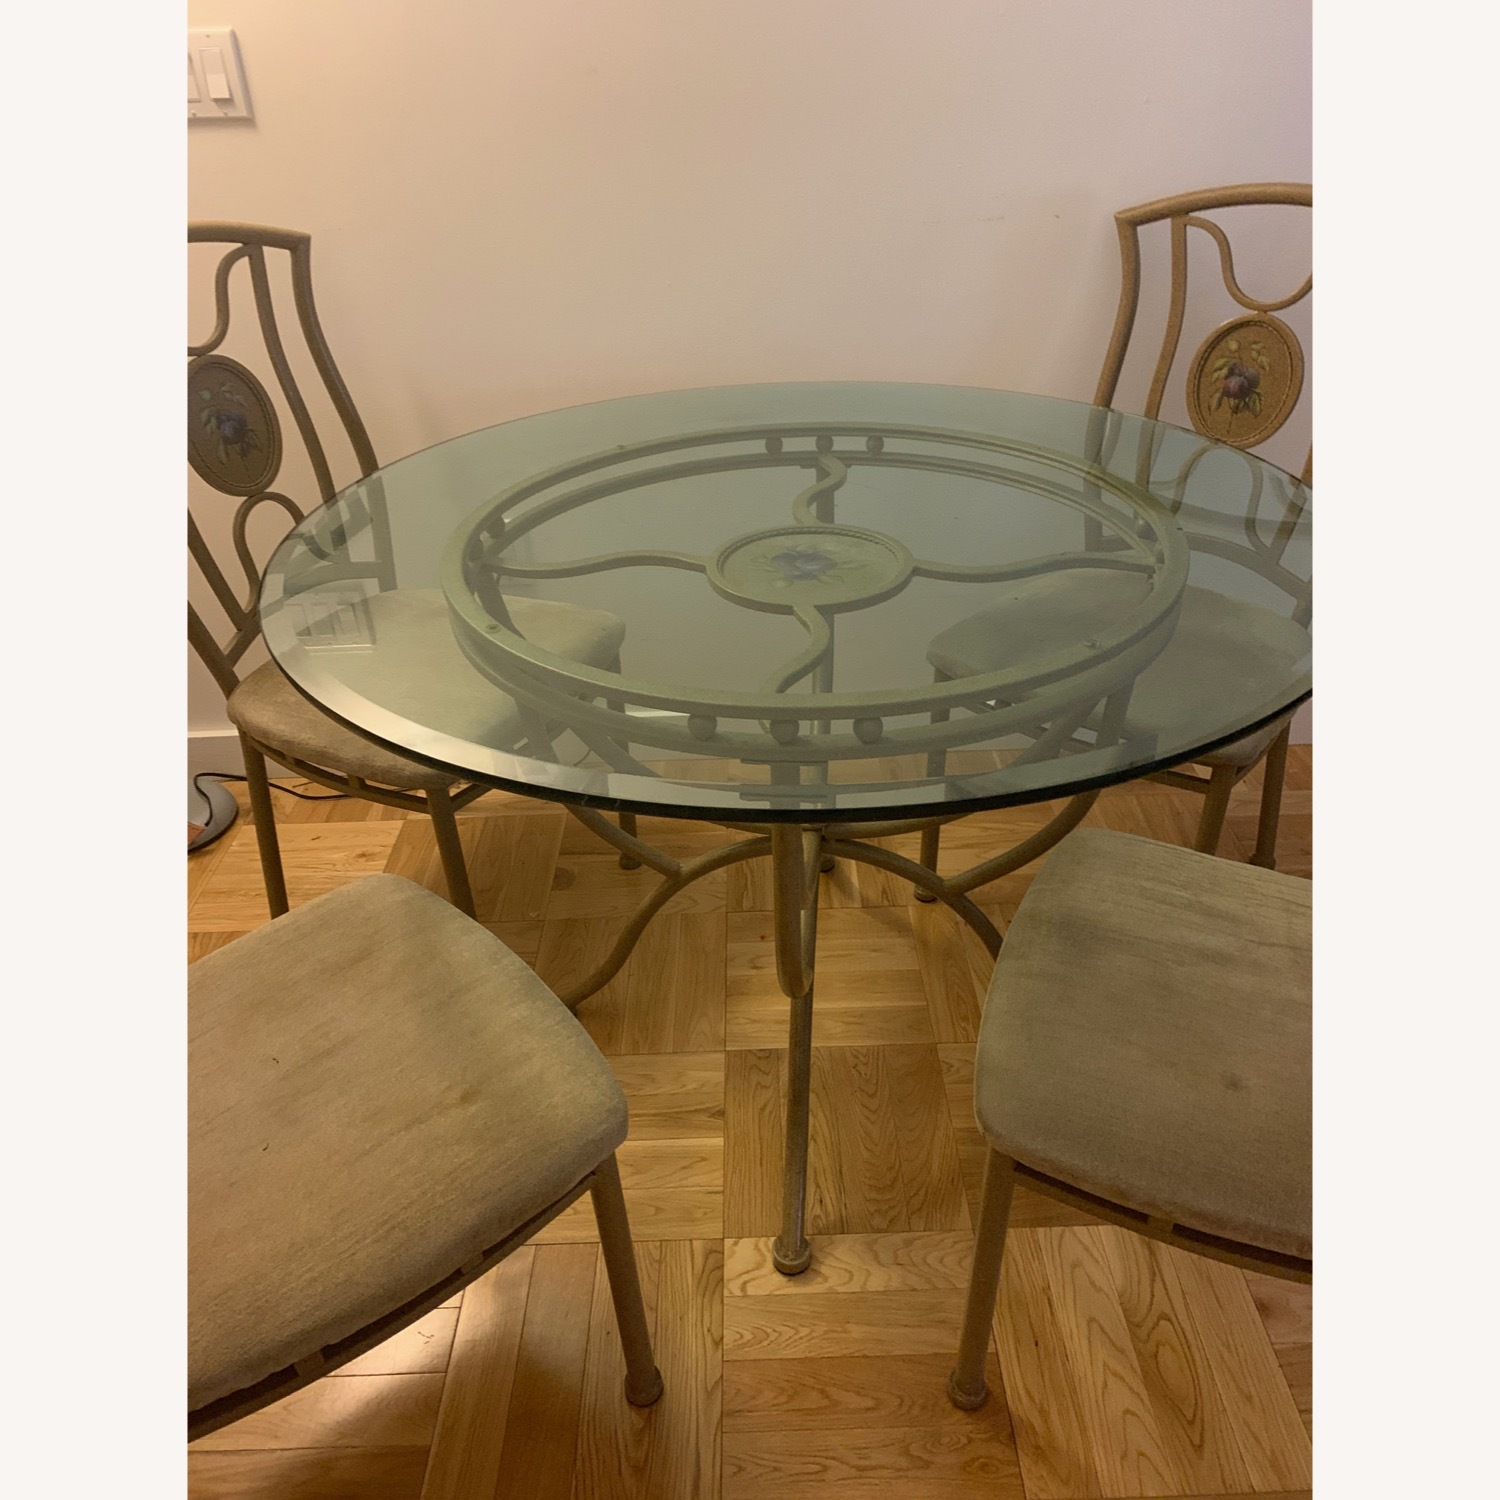 Vintage Glass Dining Room Table and Chair Set - image-1